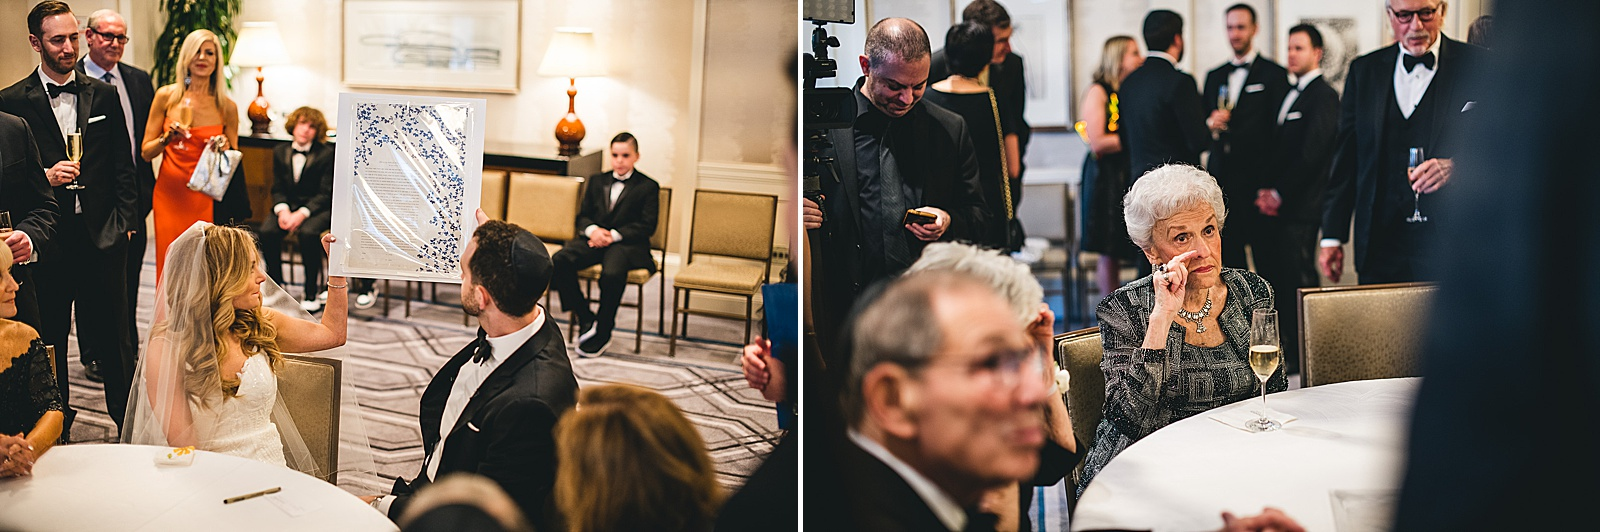 31 emotional katuhab signing in chicago wedding photographer - Susie + Eric's Jewish Wedding at the Peninsula Hotel in Chicago